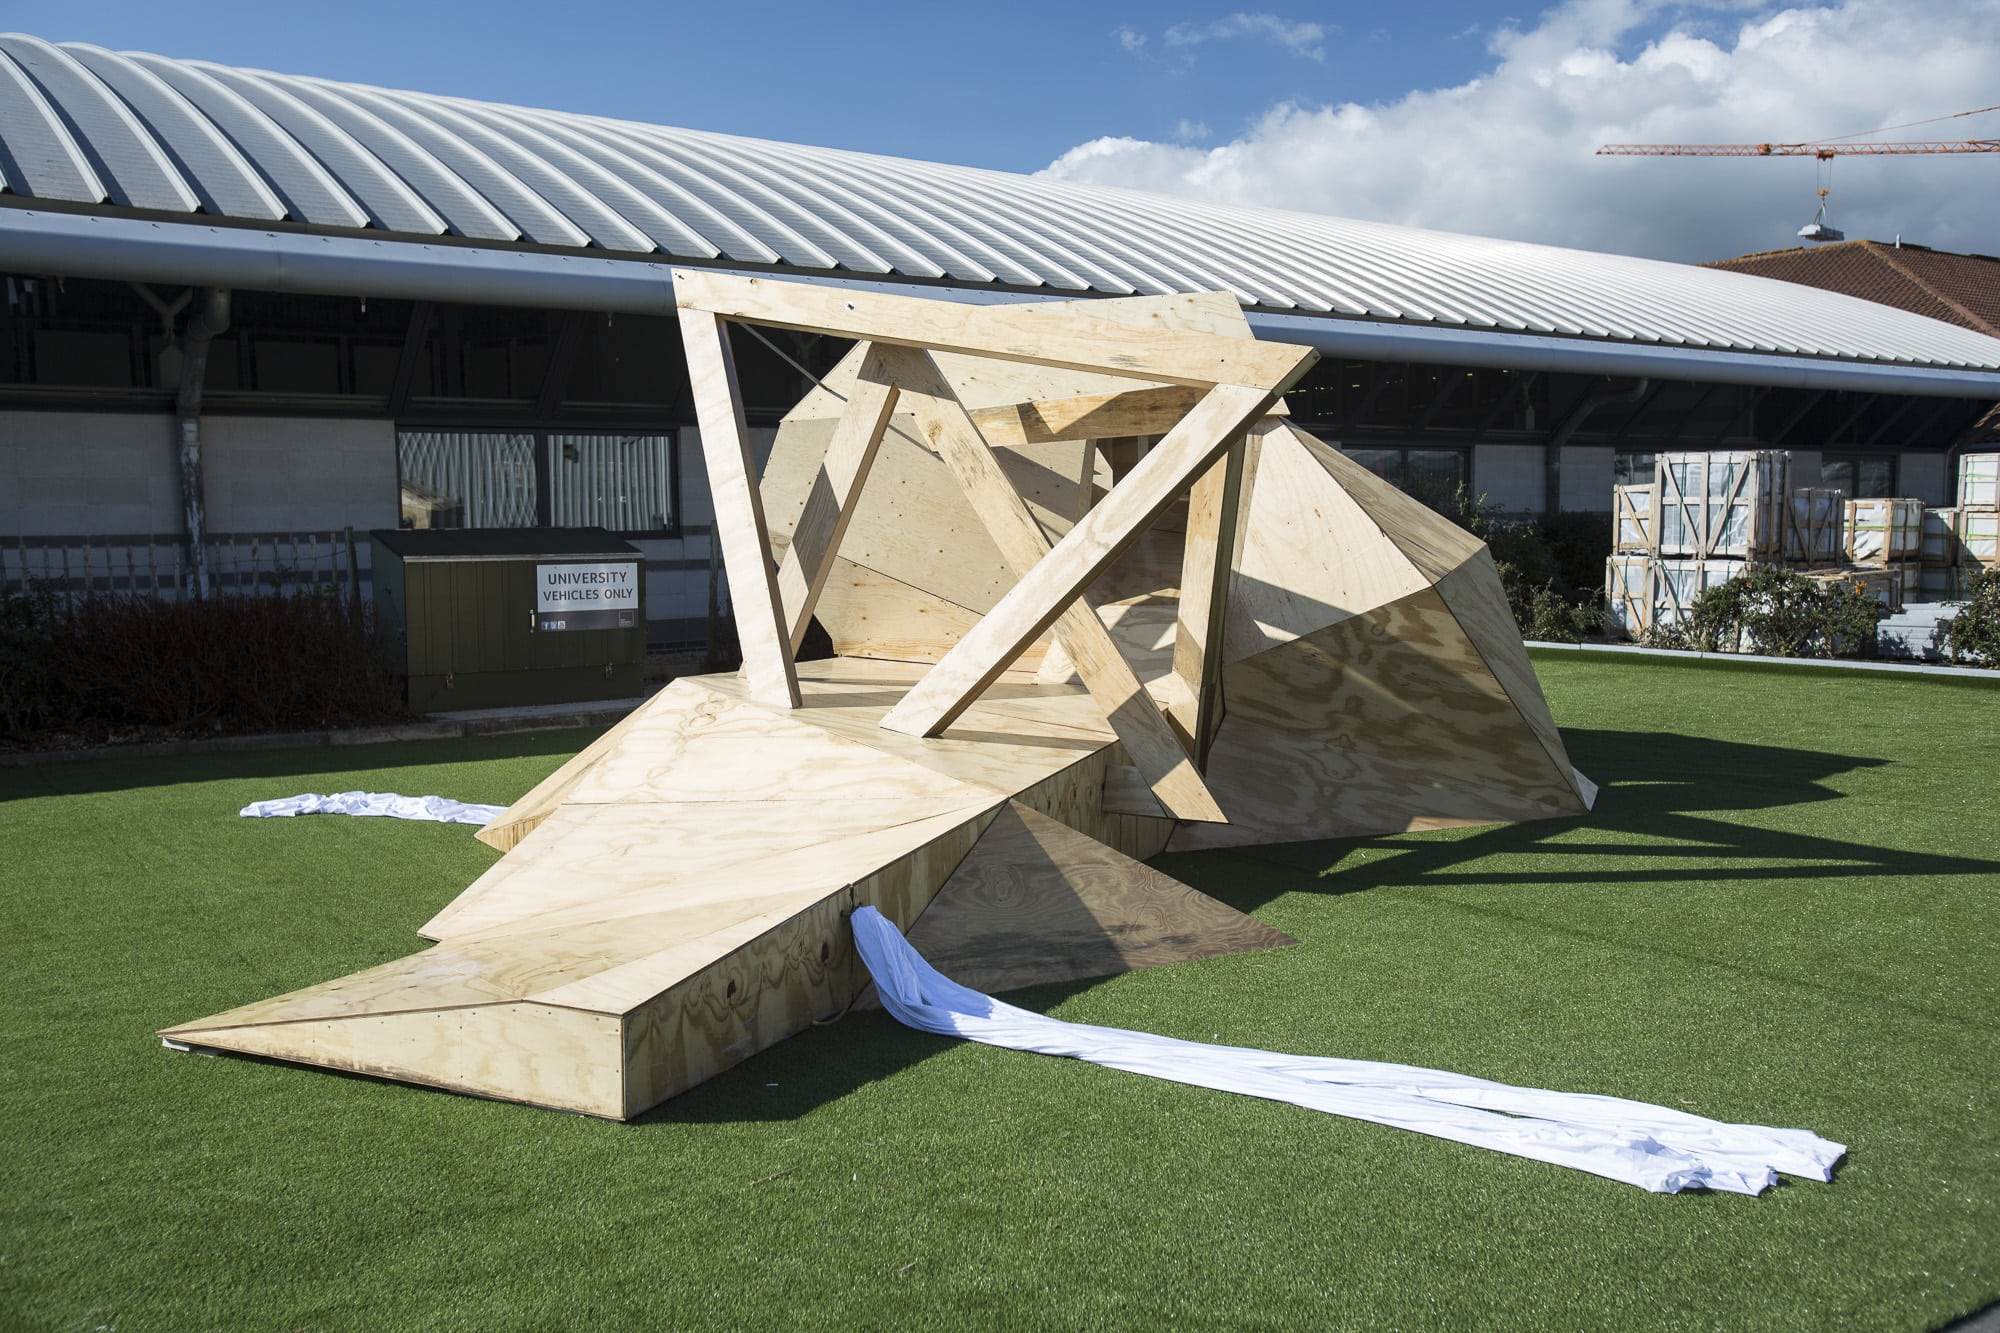 Interior Architecture alumnus has teamed up with AFC Bournemouth Footballer